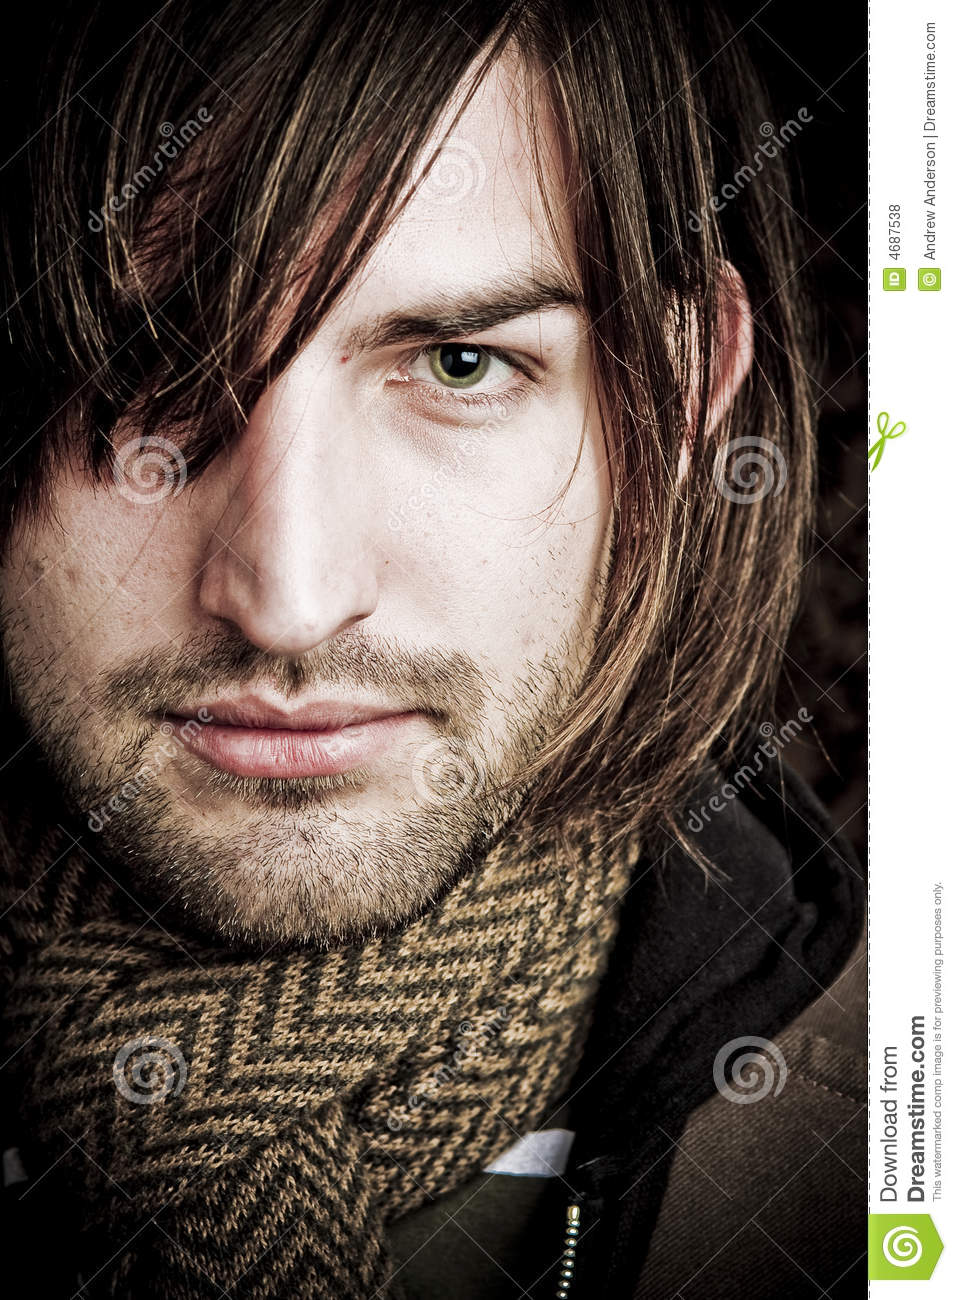 Hair Over Eye Royalty Free Stock Photos Image 4687538